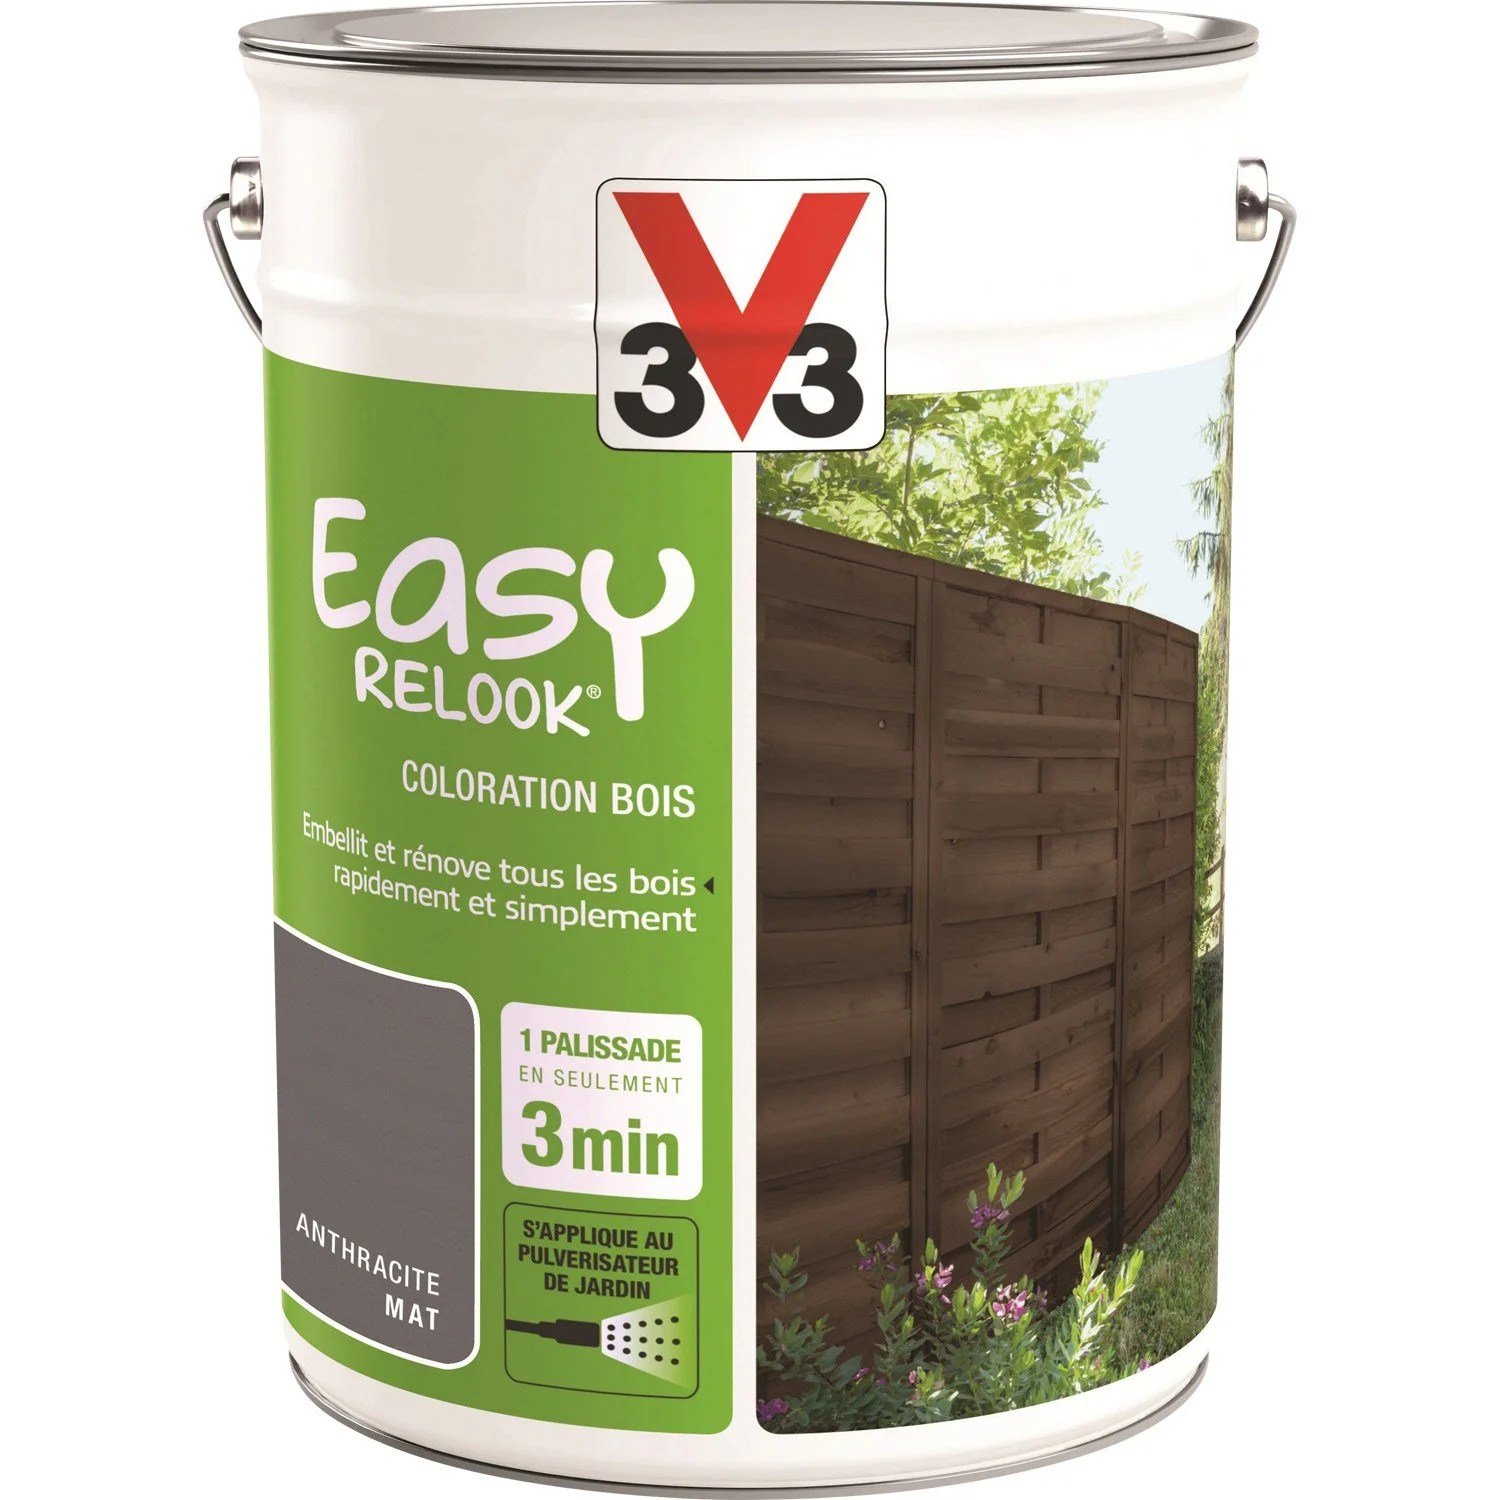 Leroy Merlin Relook Bois Protection V33 Easy Relook Bois 5 L Anthracite Leroy Merlin